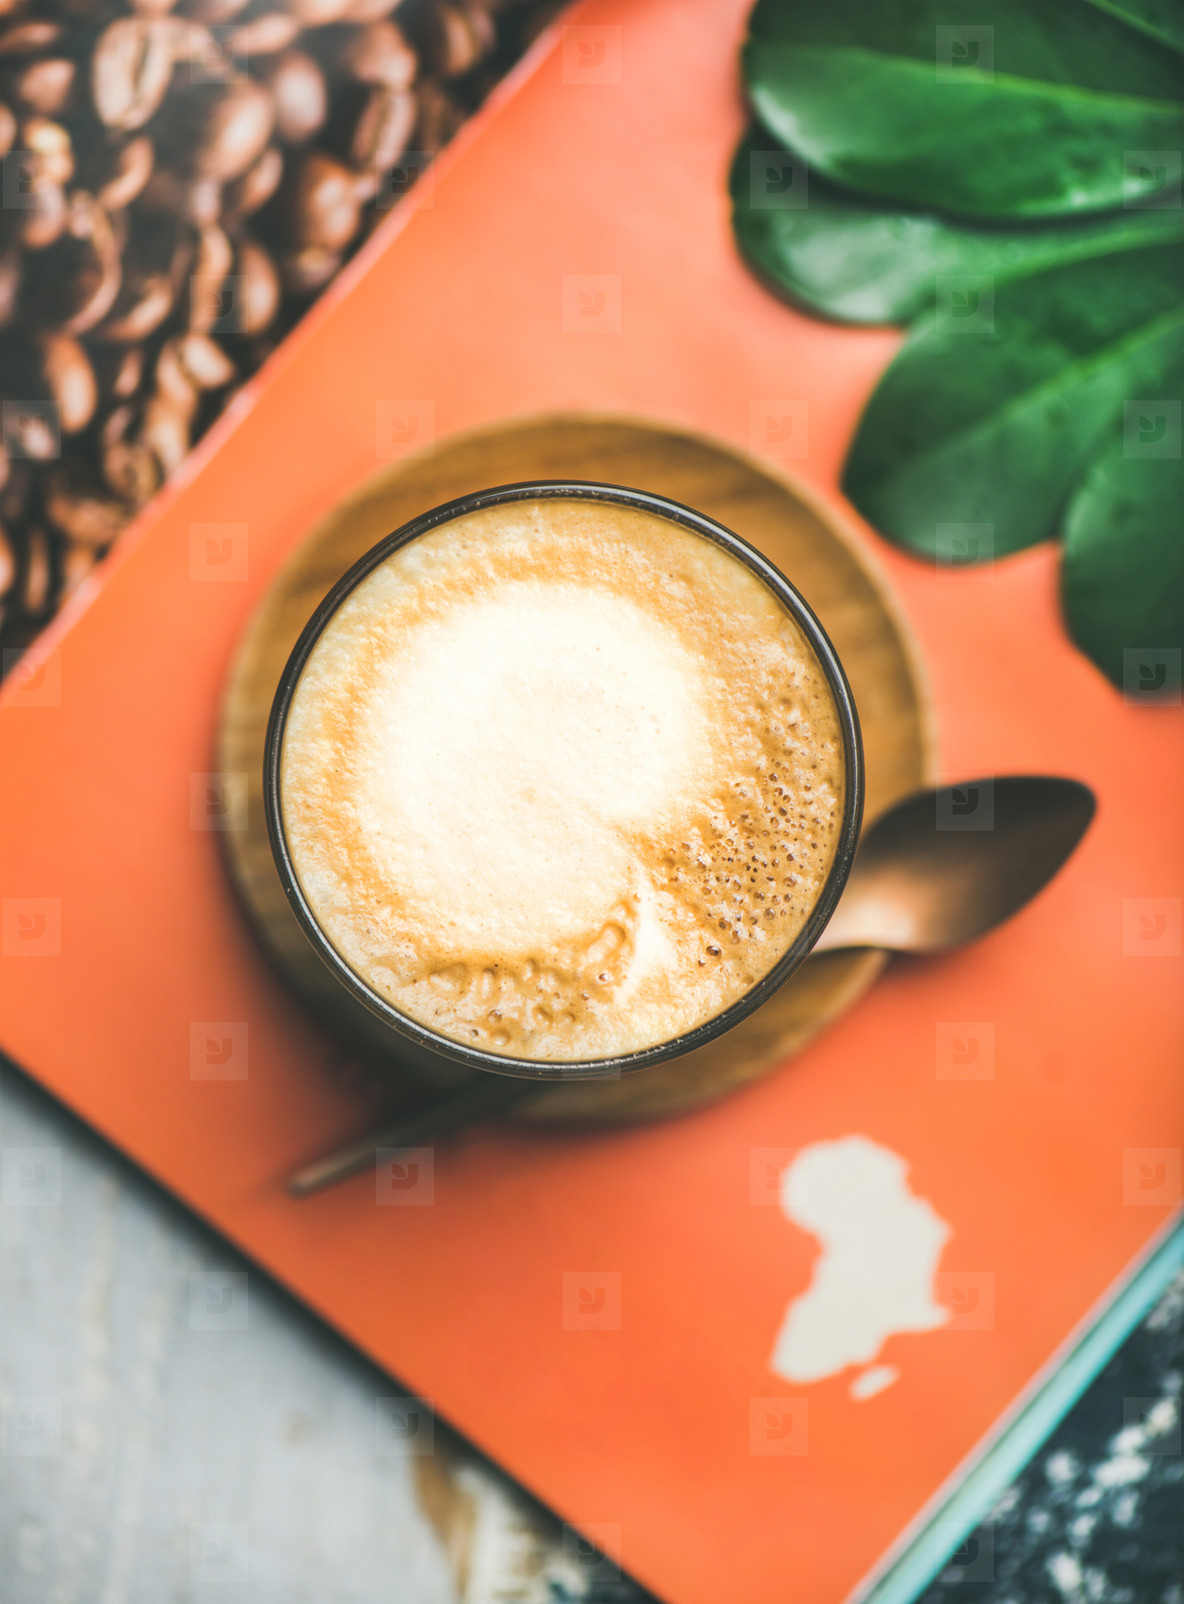 Cappuccino coffee in glass over table with magazine background